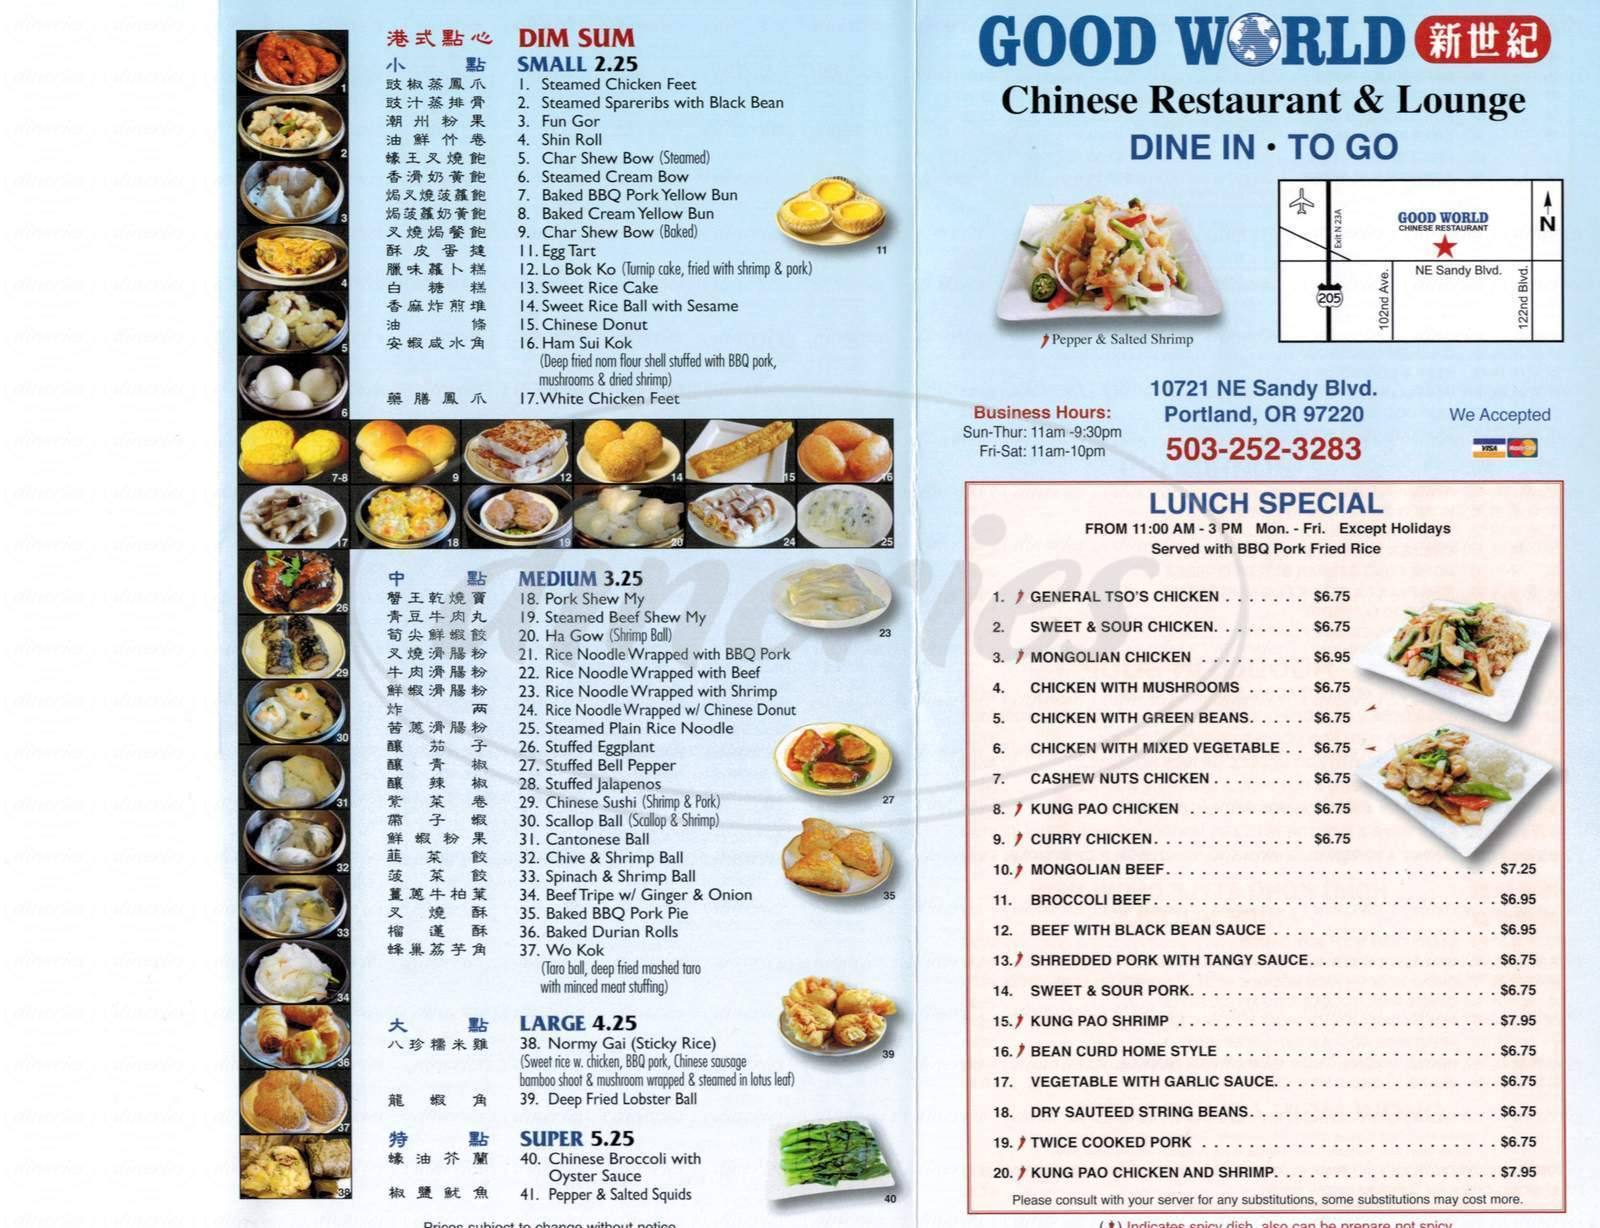 menu for Good World Chinese Restaurant